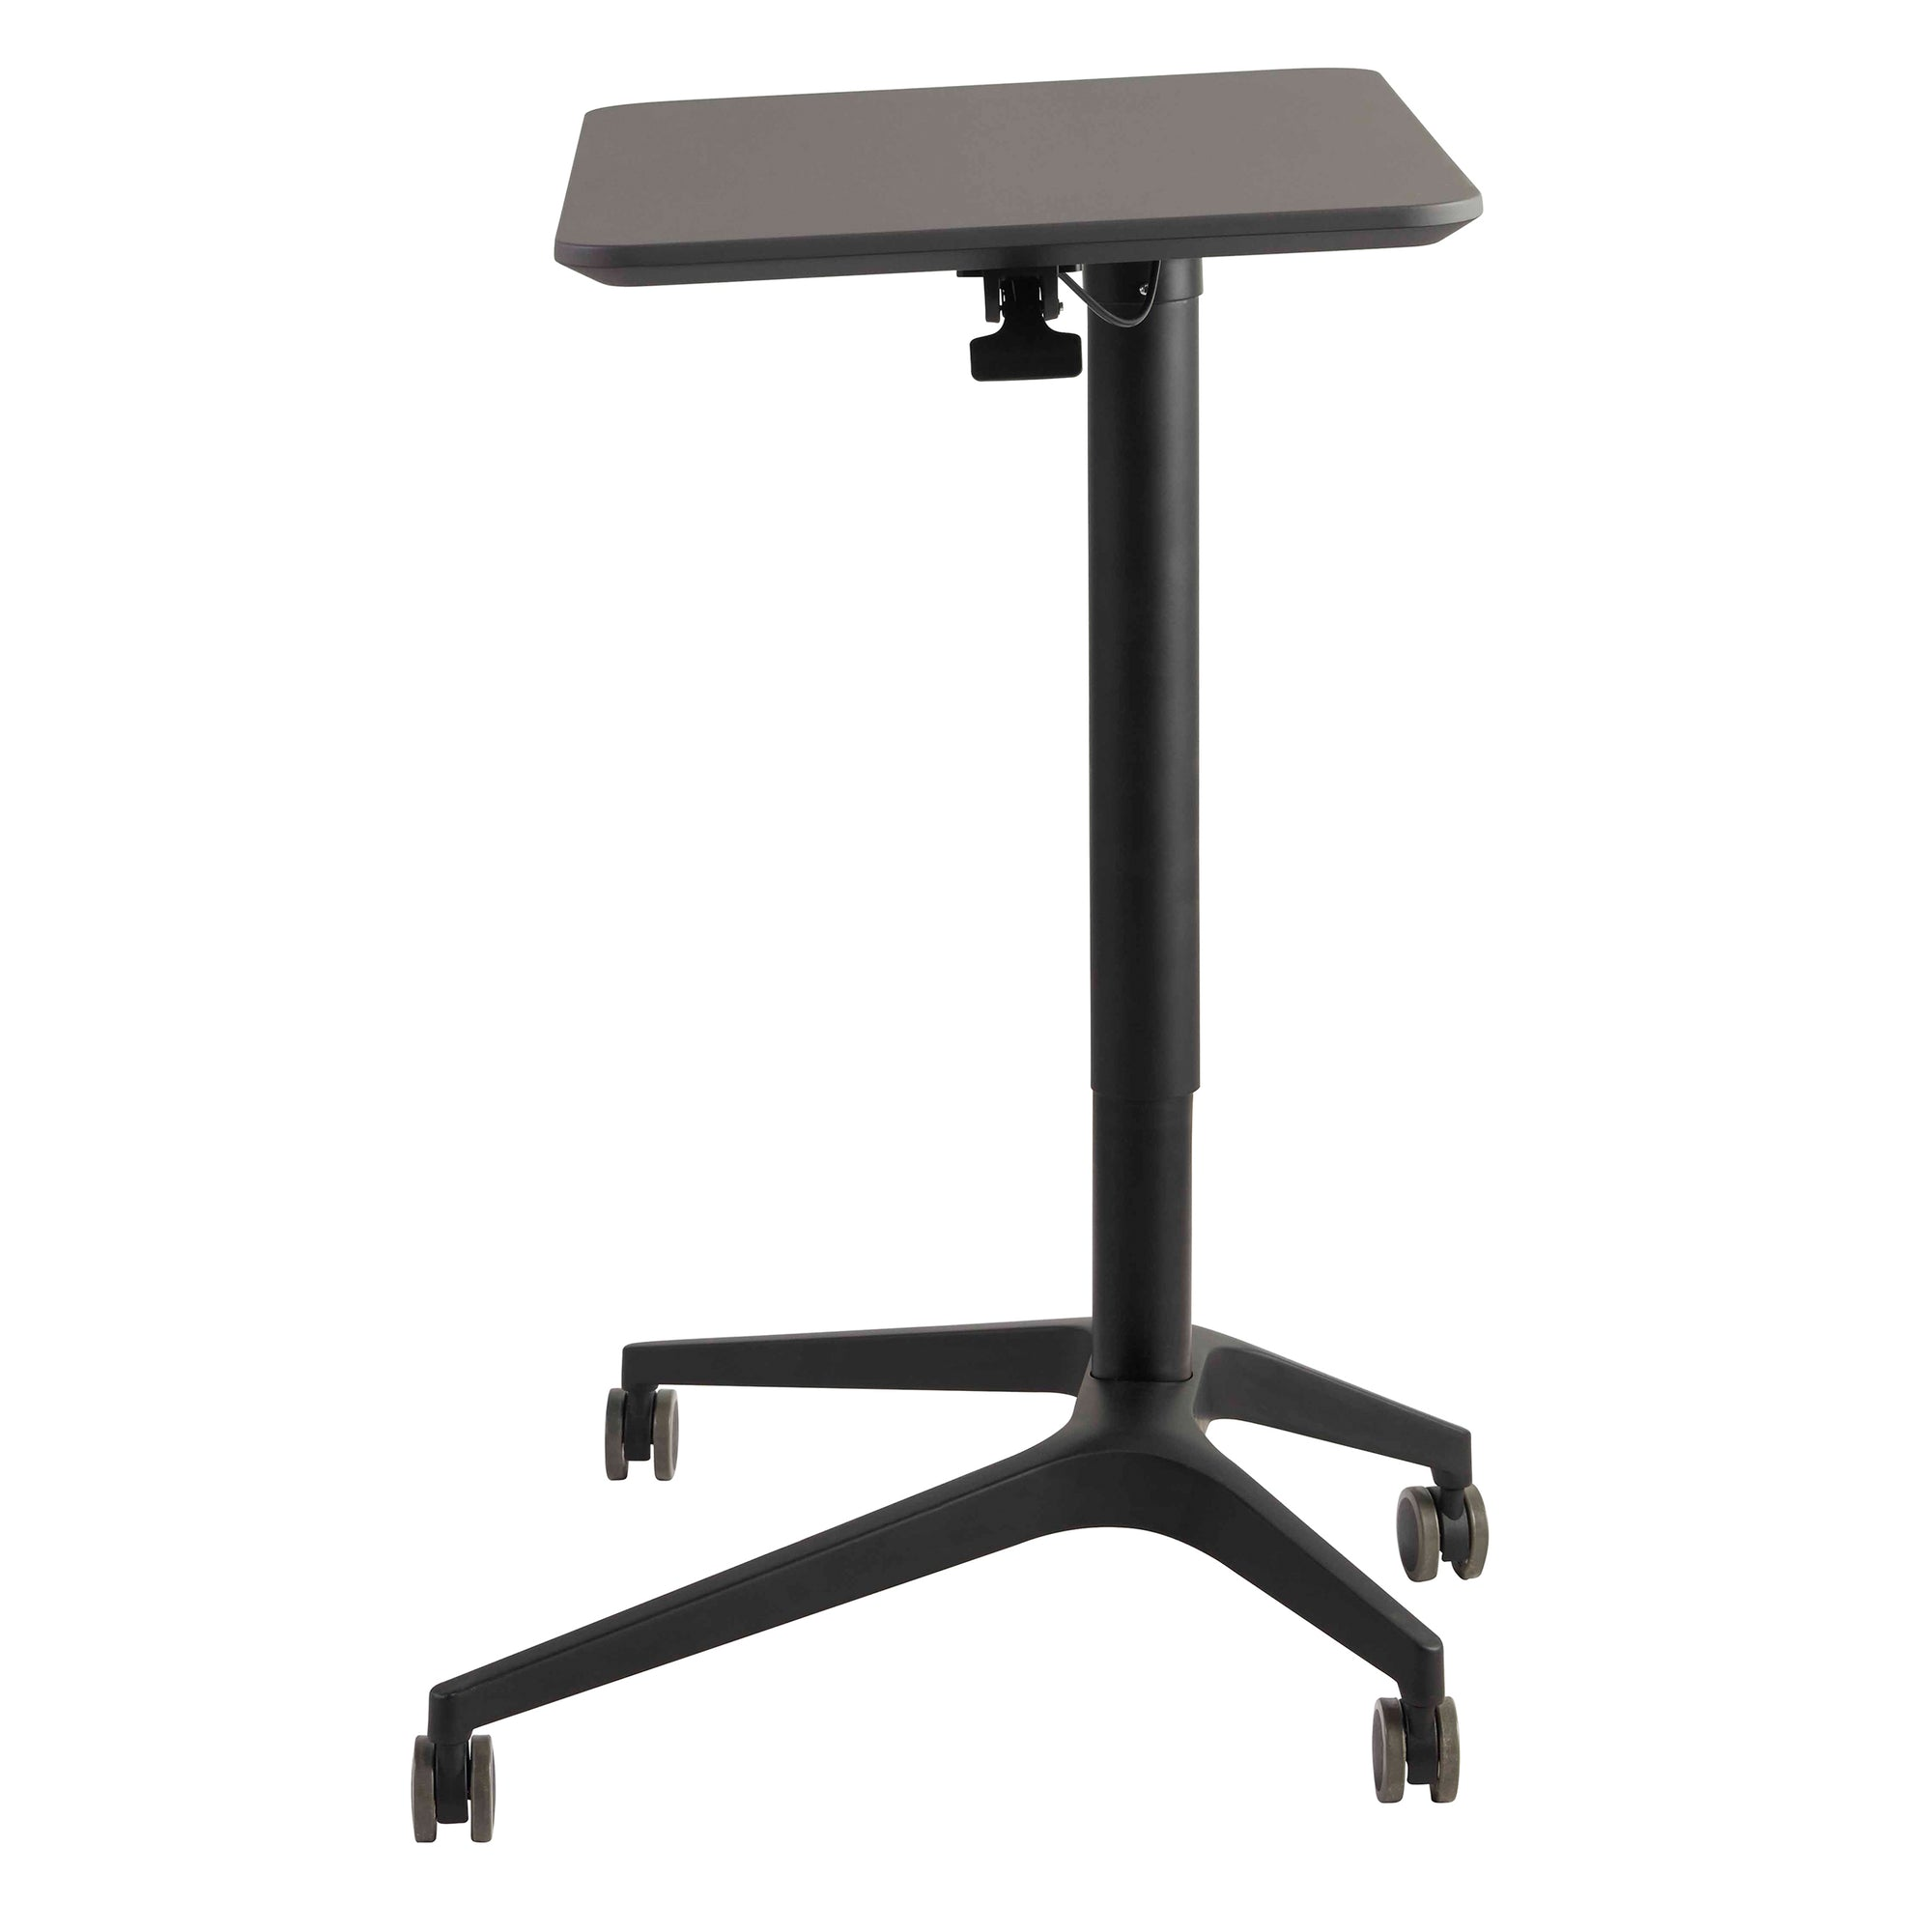 station mobile work stand adjustable desk rolling with vivo cart presentation up computer storage height pin